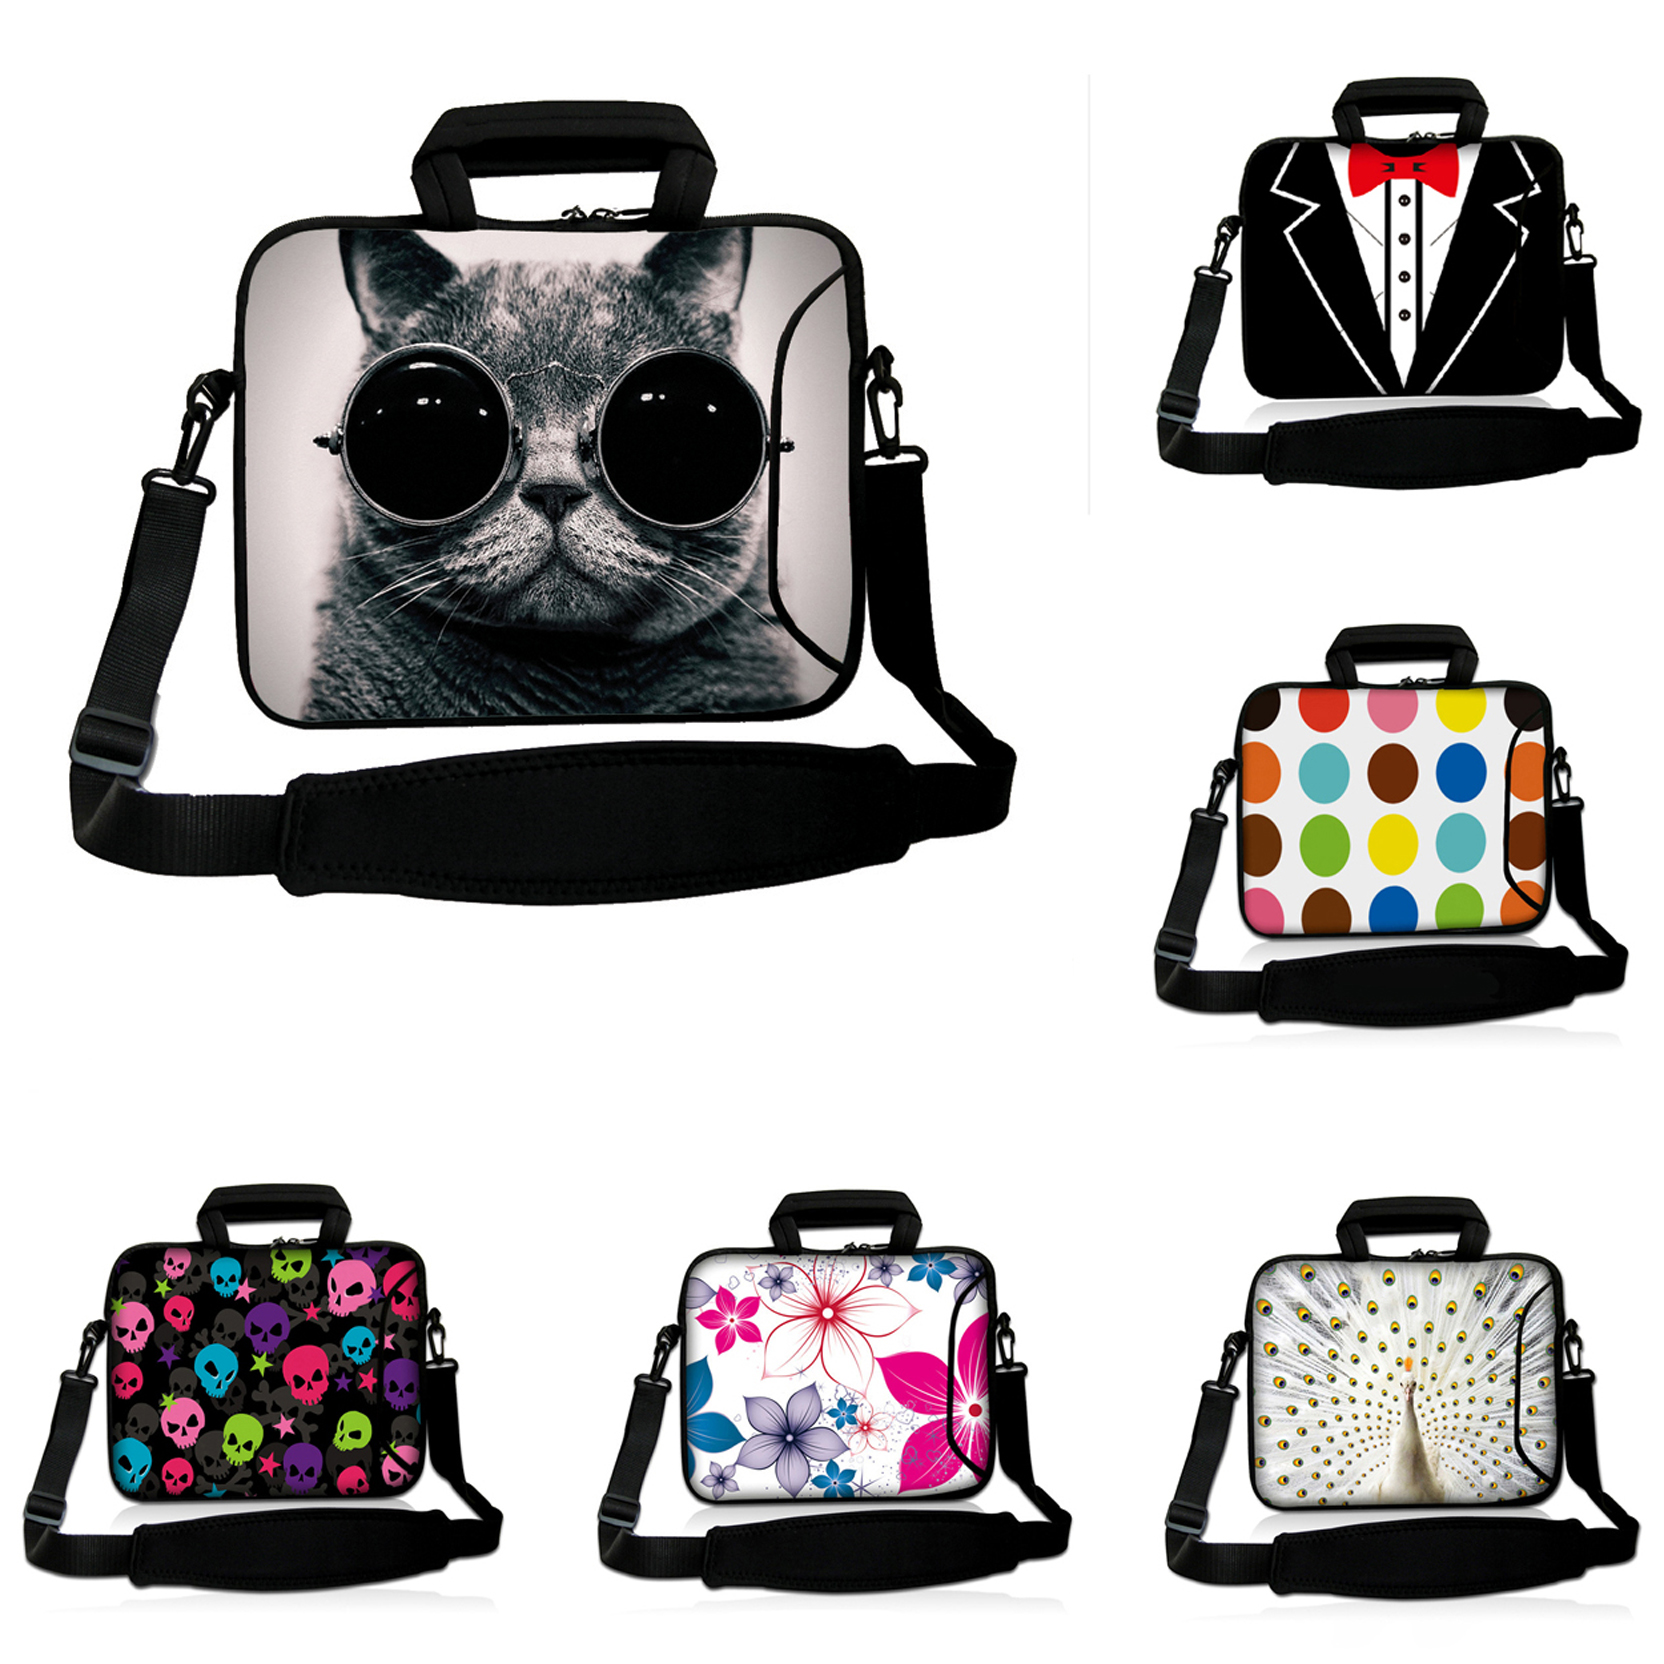 New Arrival Hot 15.4 15.3 15.6 15 inch Laptop Computer Notebook Bags For Dell Acer Thinkpad Shoulder Messenger Laptop Pouch Bag<br><br>Aliexpress